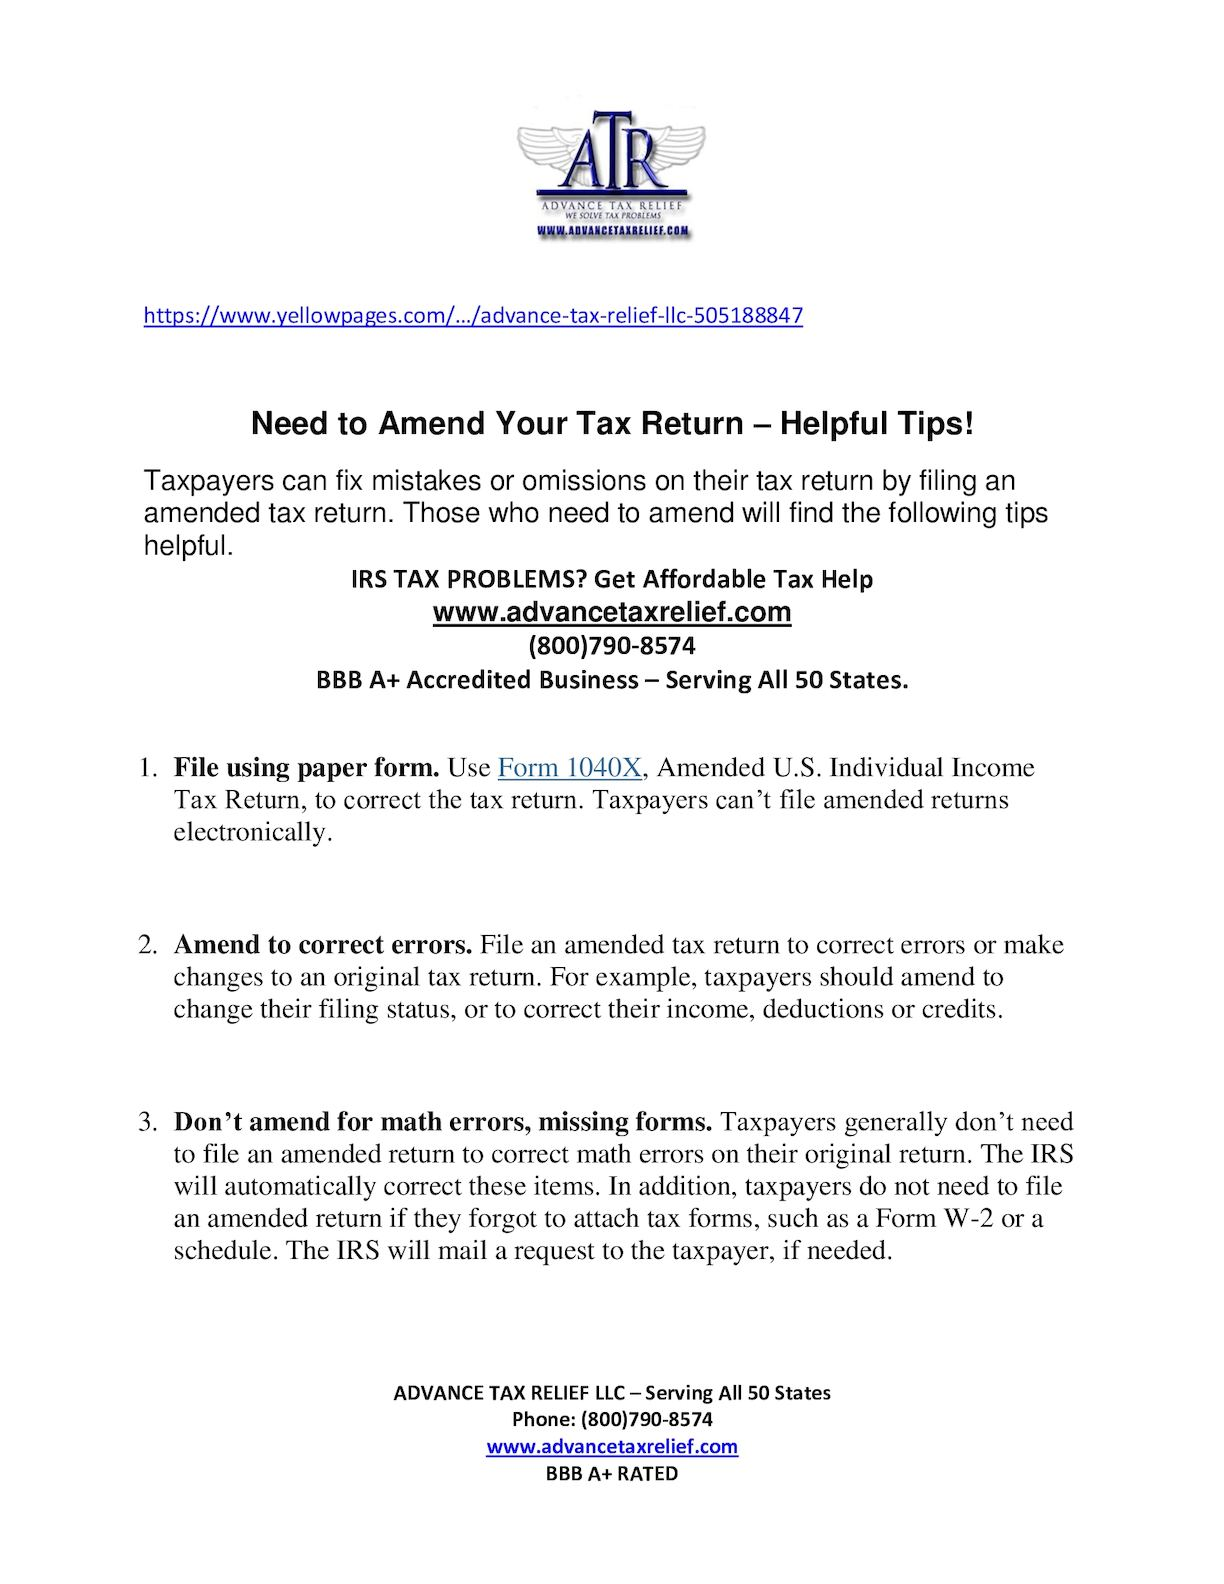 Calaméo - Need to Amend Your Tax Return – Helpful Tips!